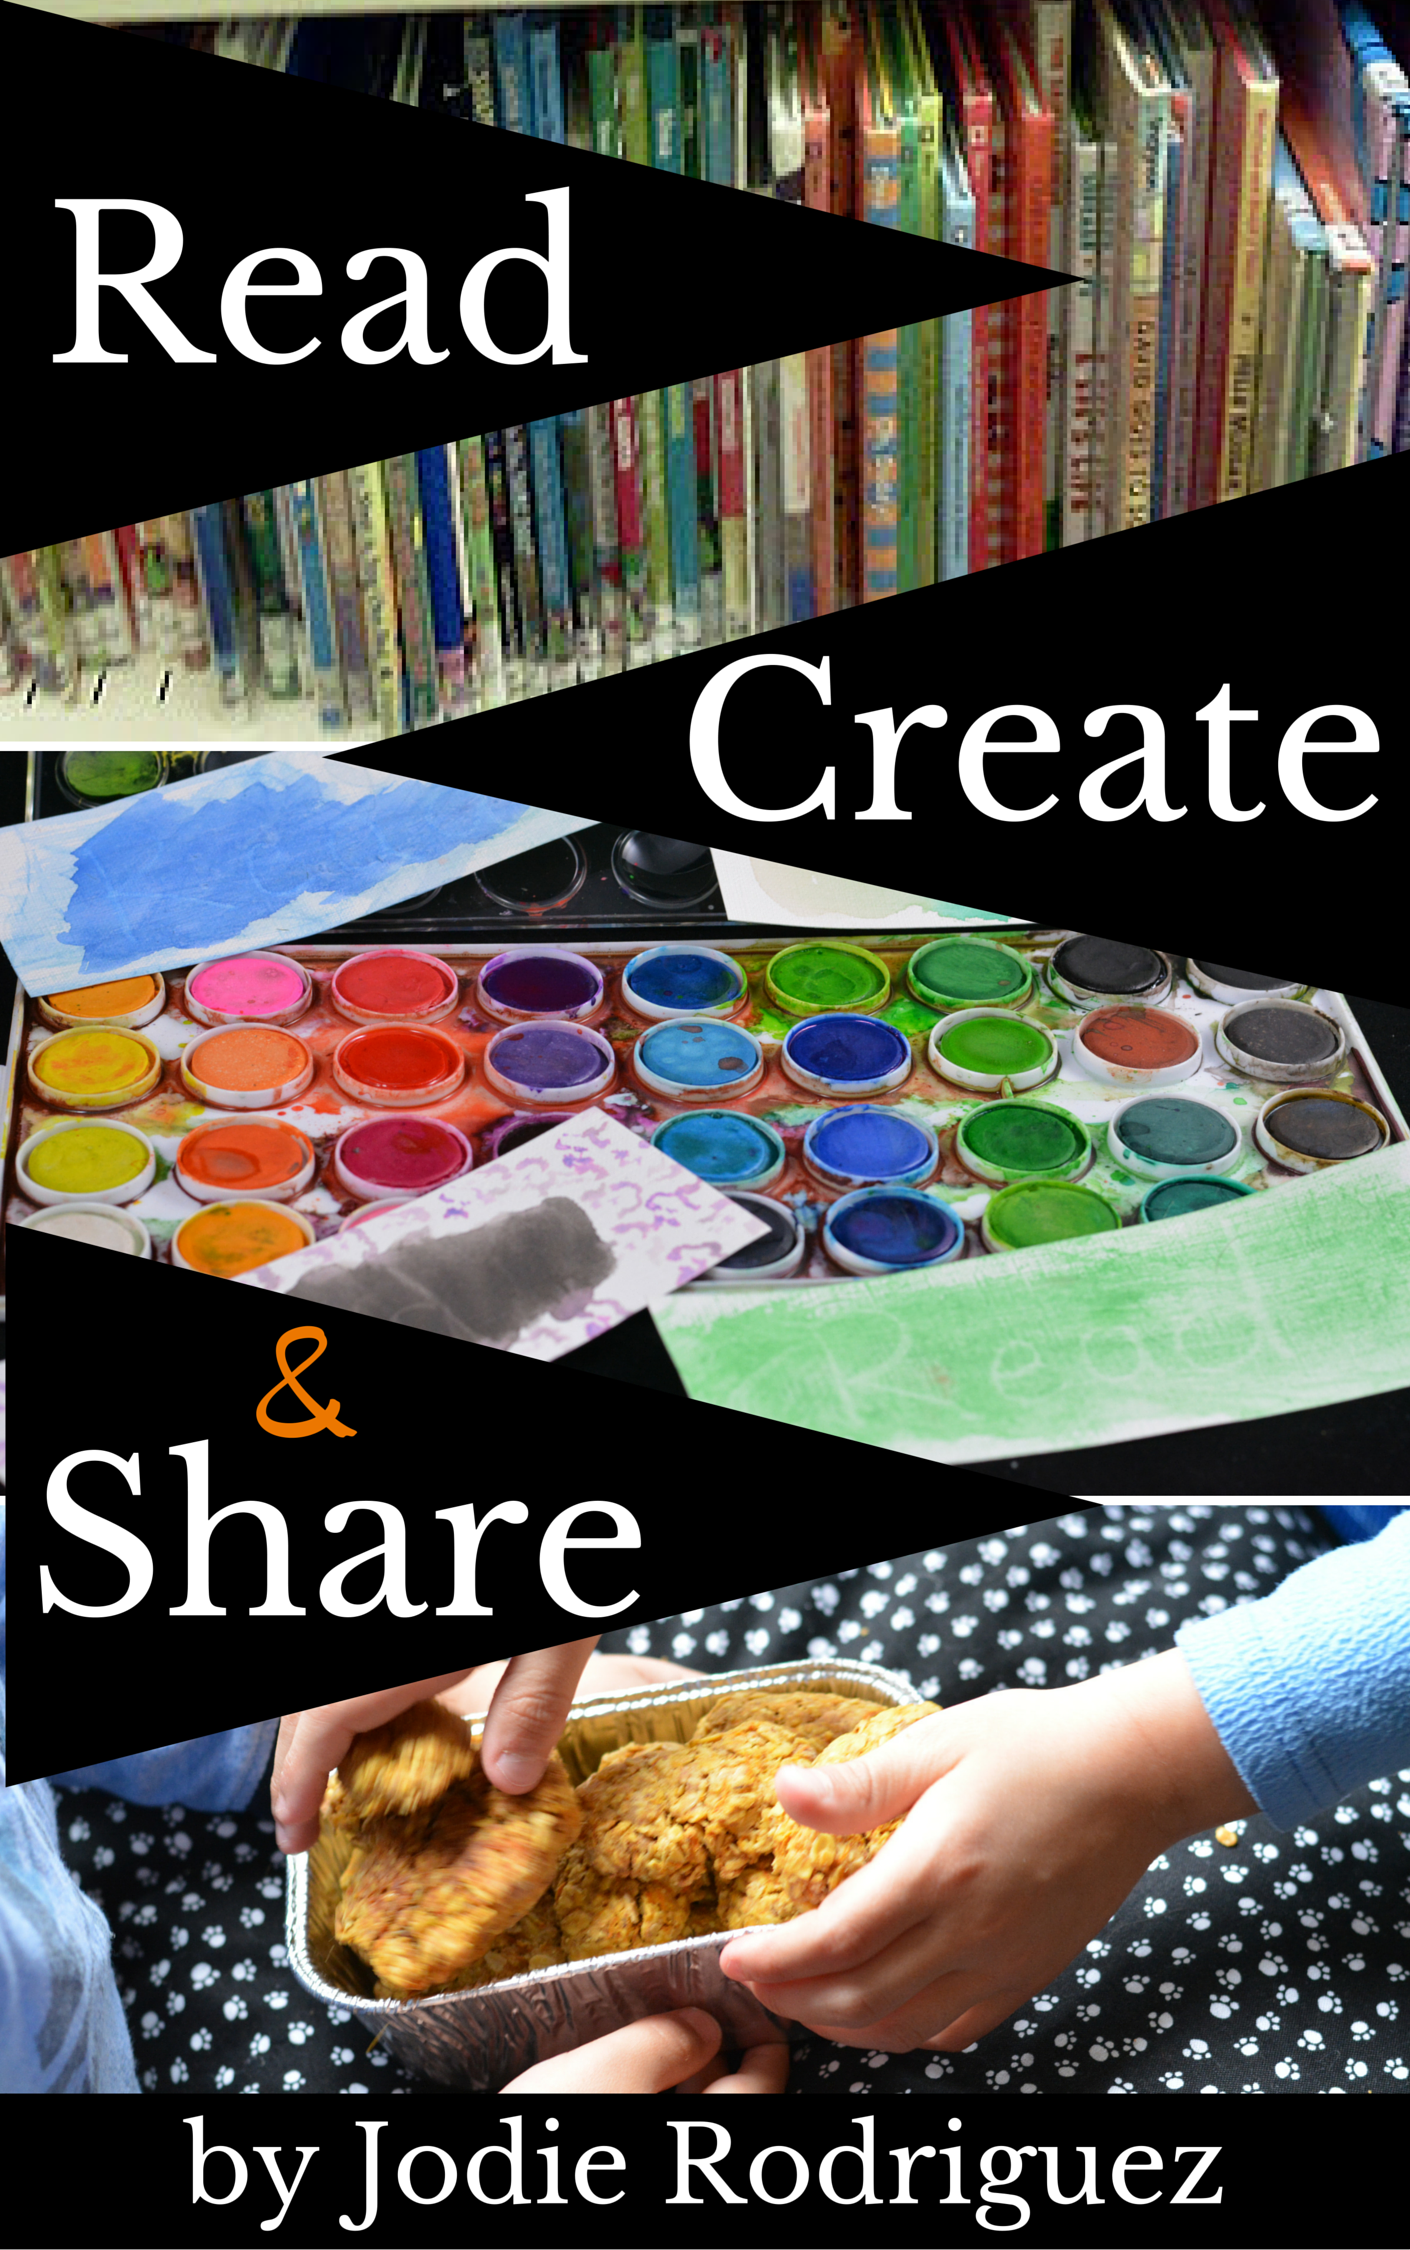 My new book, Read, Create & Share is coming soon.  Be one of the first to know when it is released.